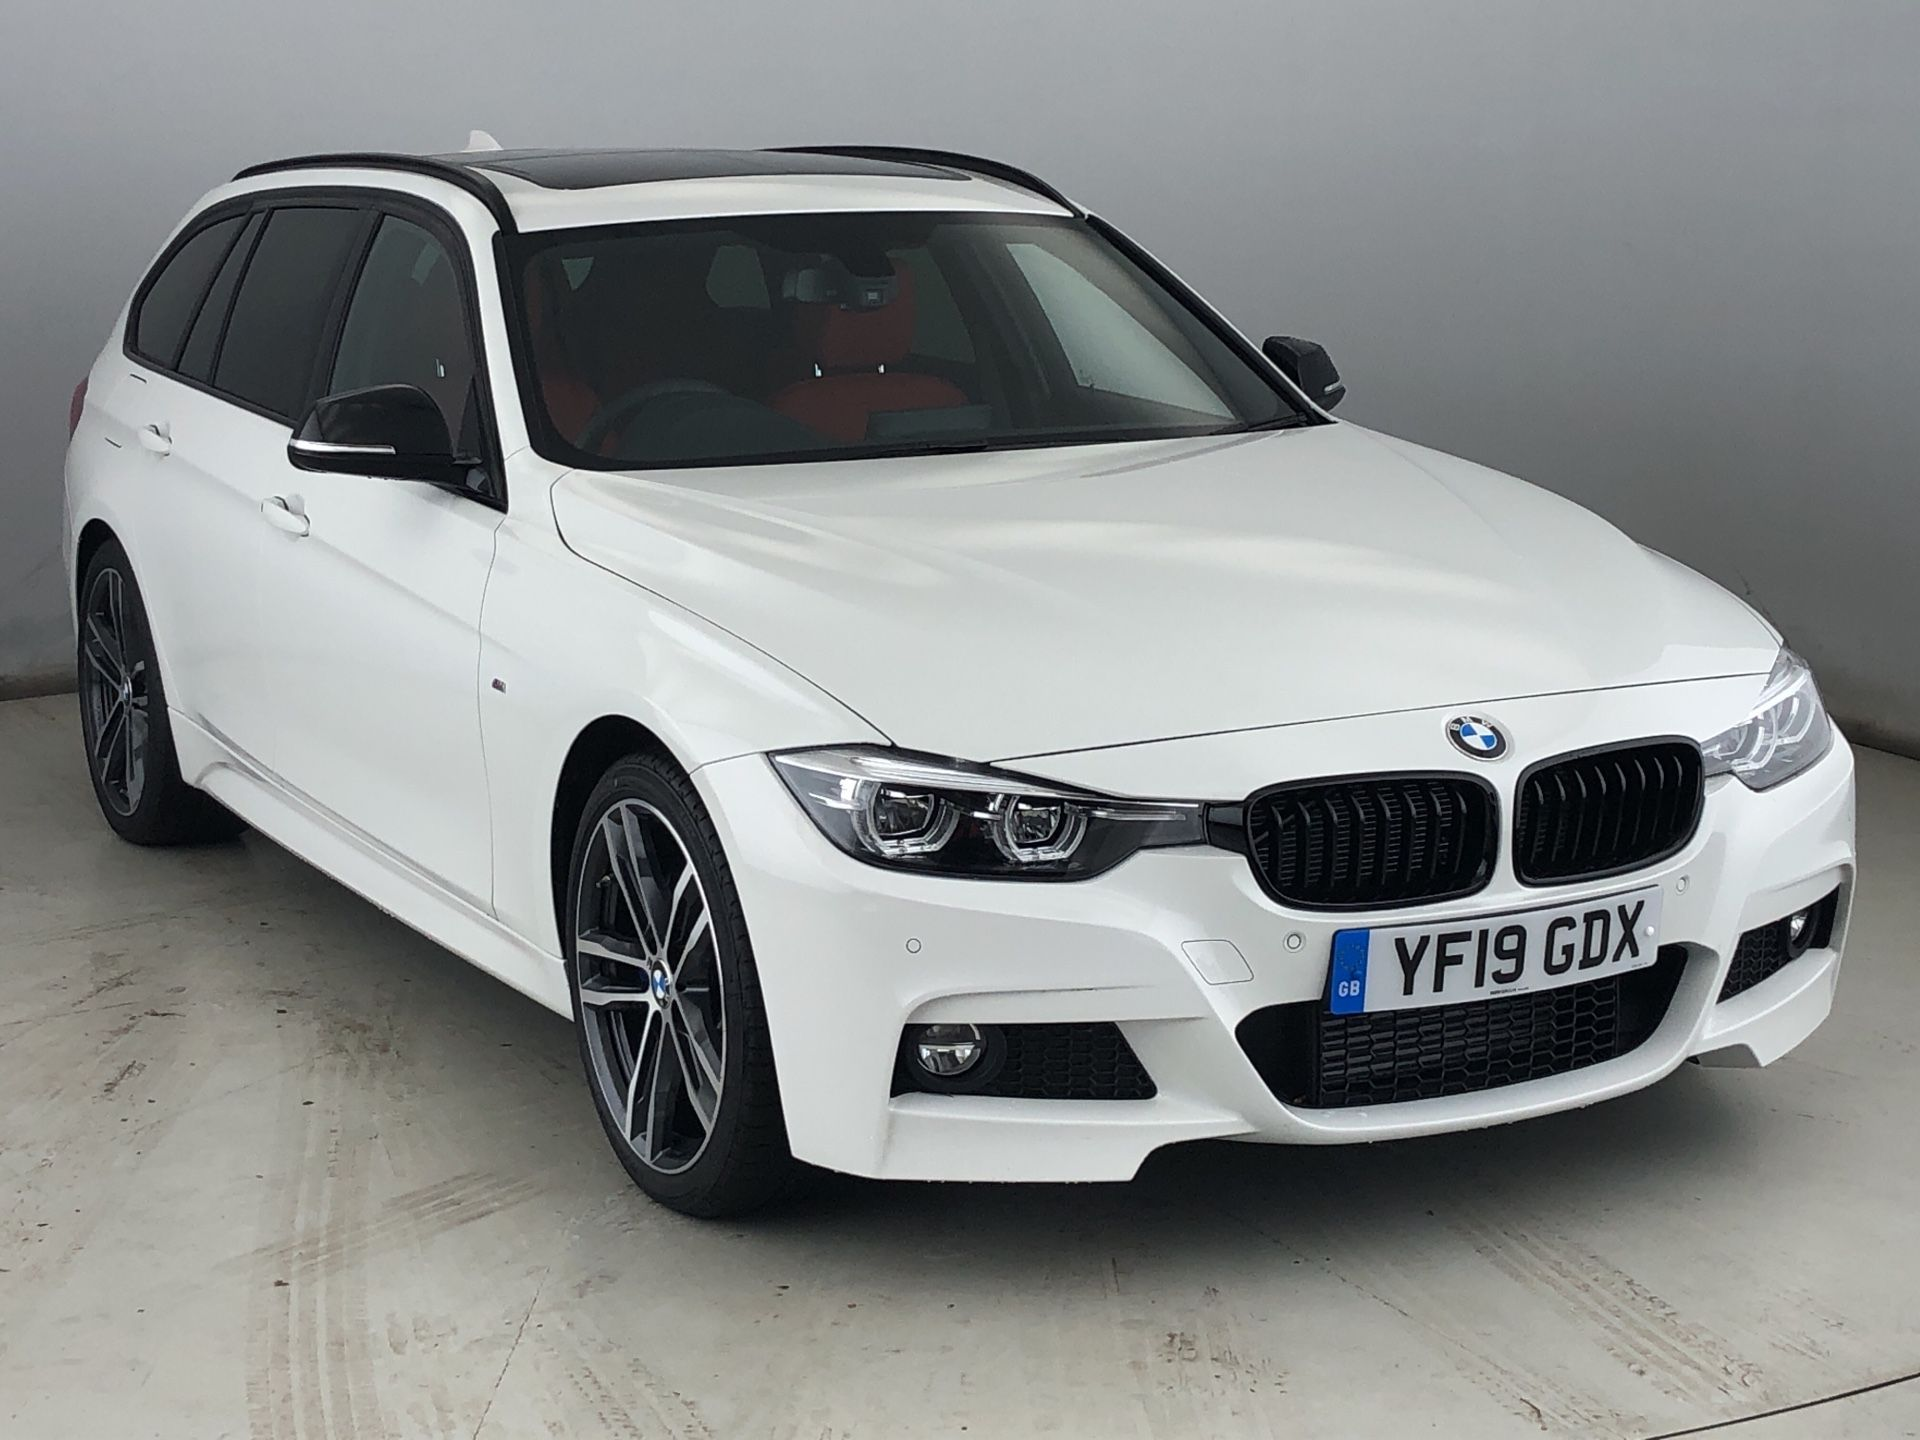 Image 1 - BMW 320d M Sport Shadow Edition Touring (YF19GDX)